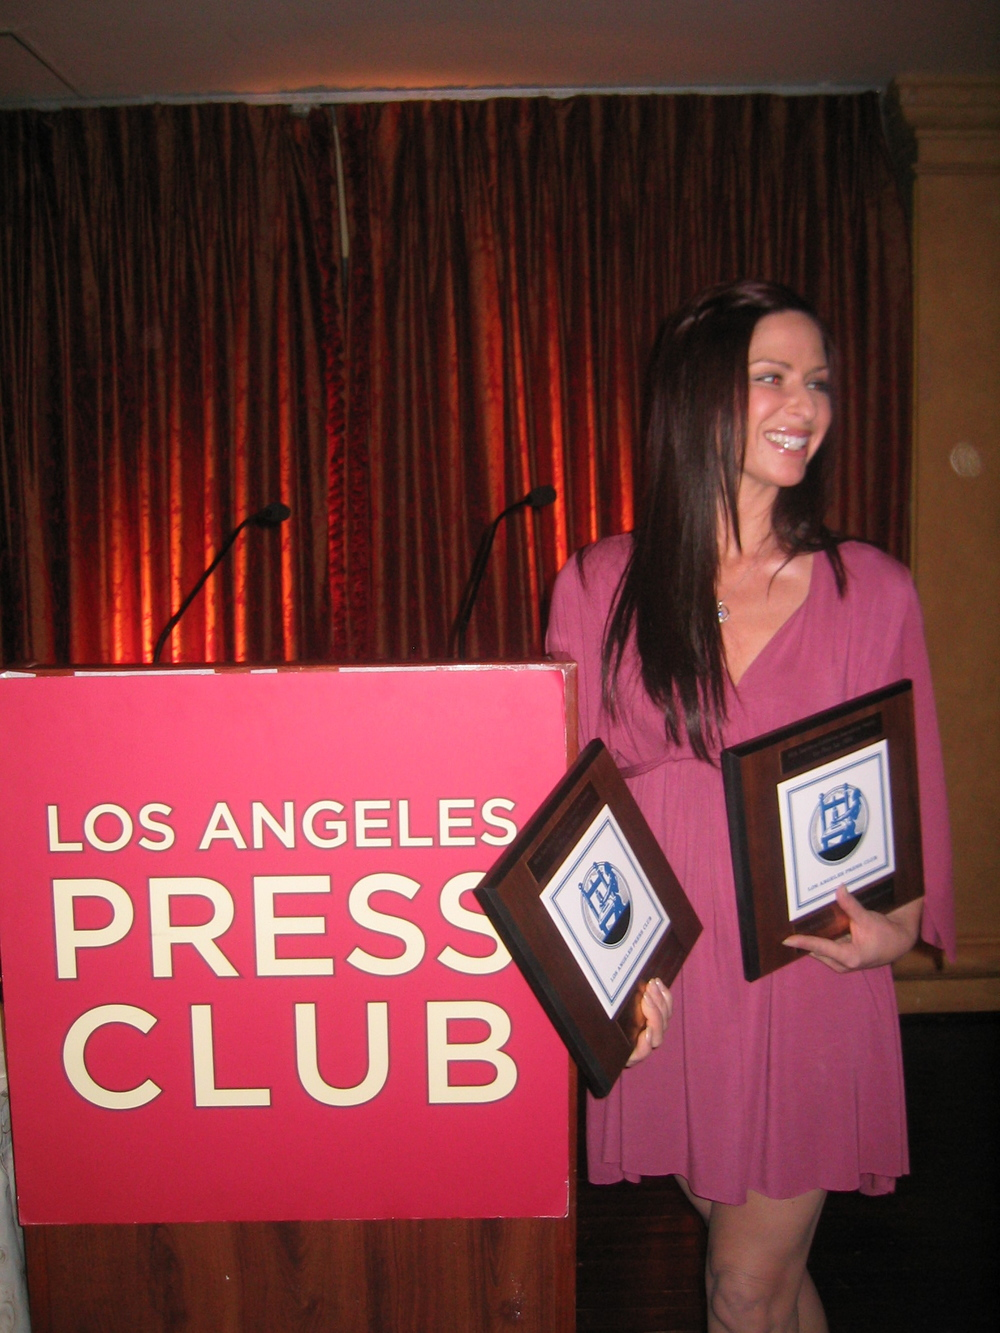 pressclubawards 002.jpg